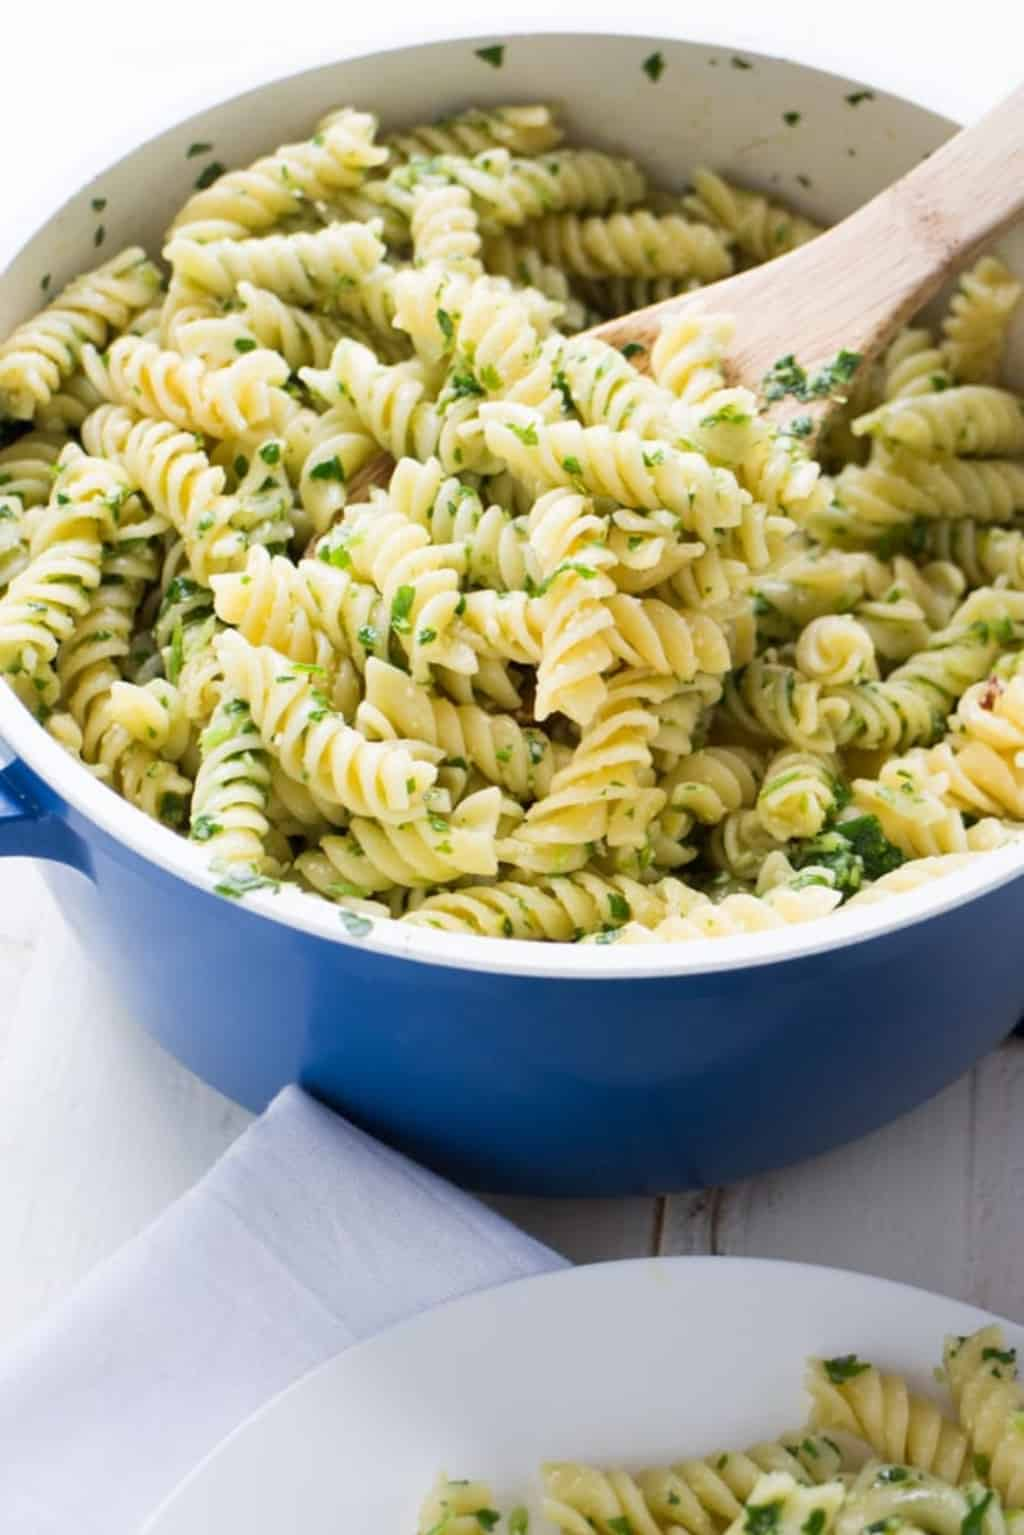 Close up of pasta in a blue dish